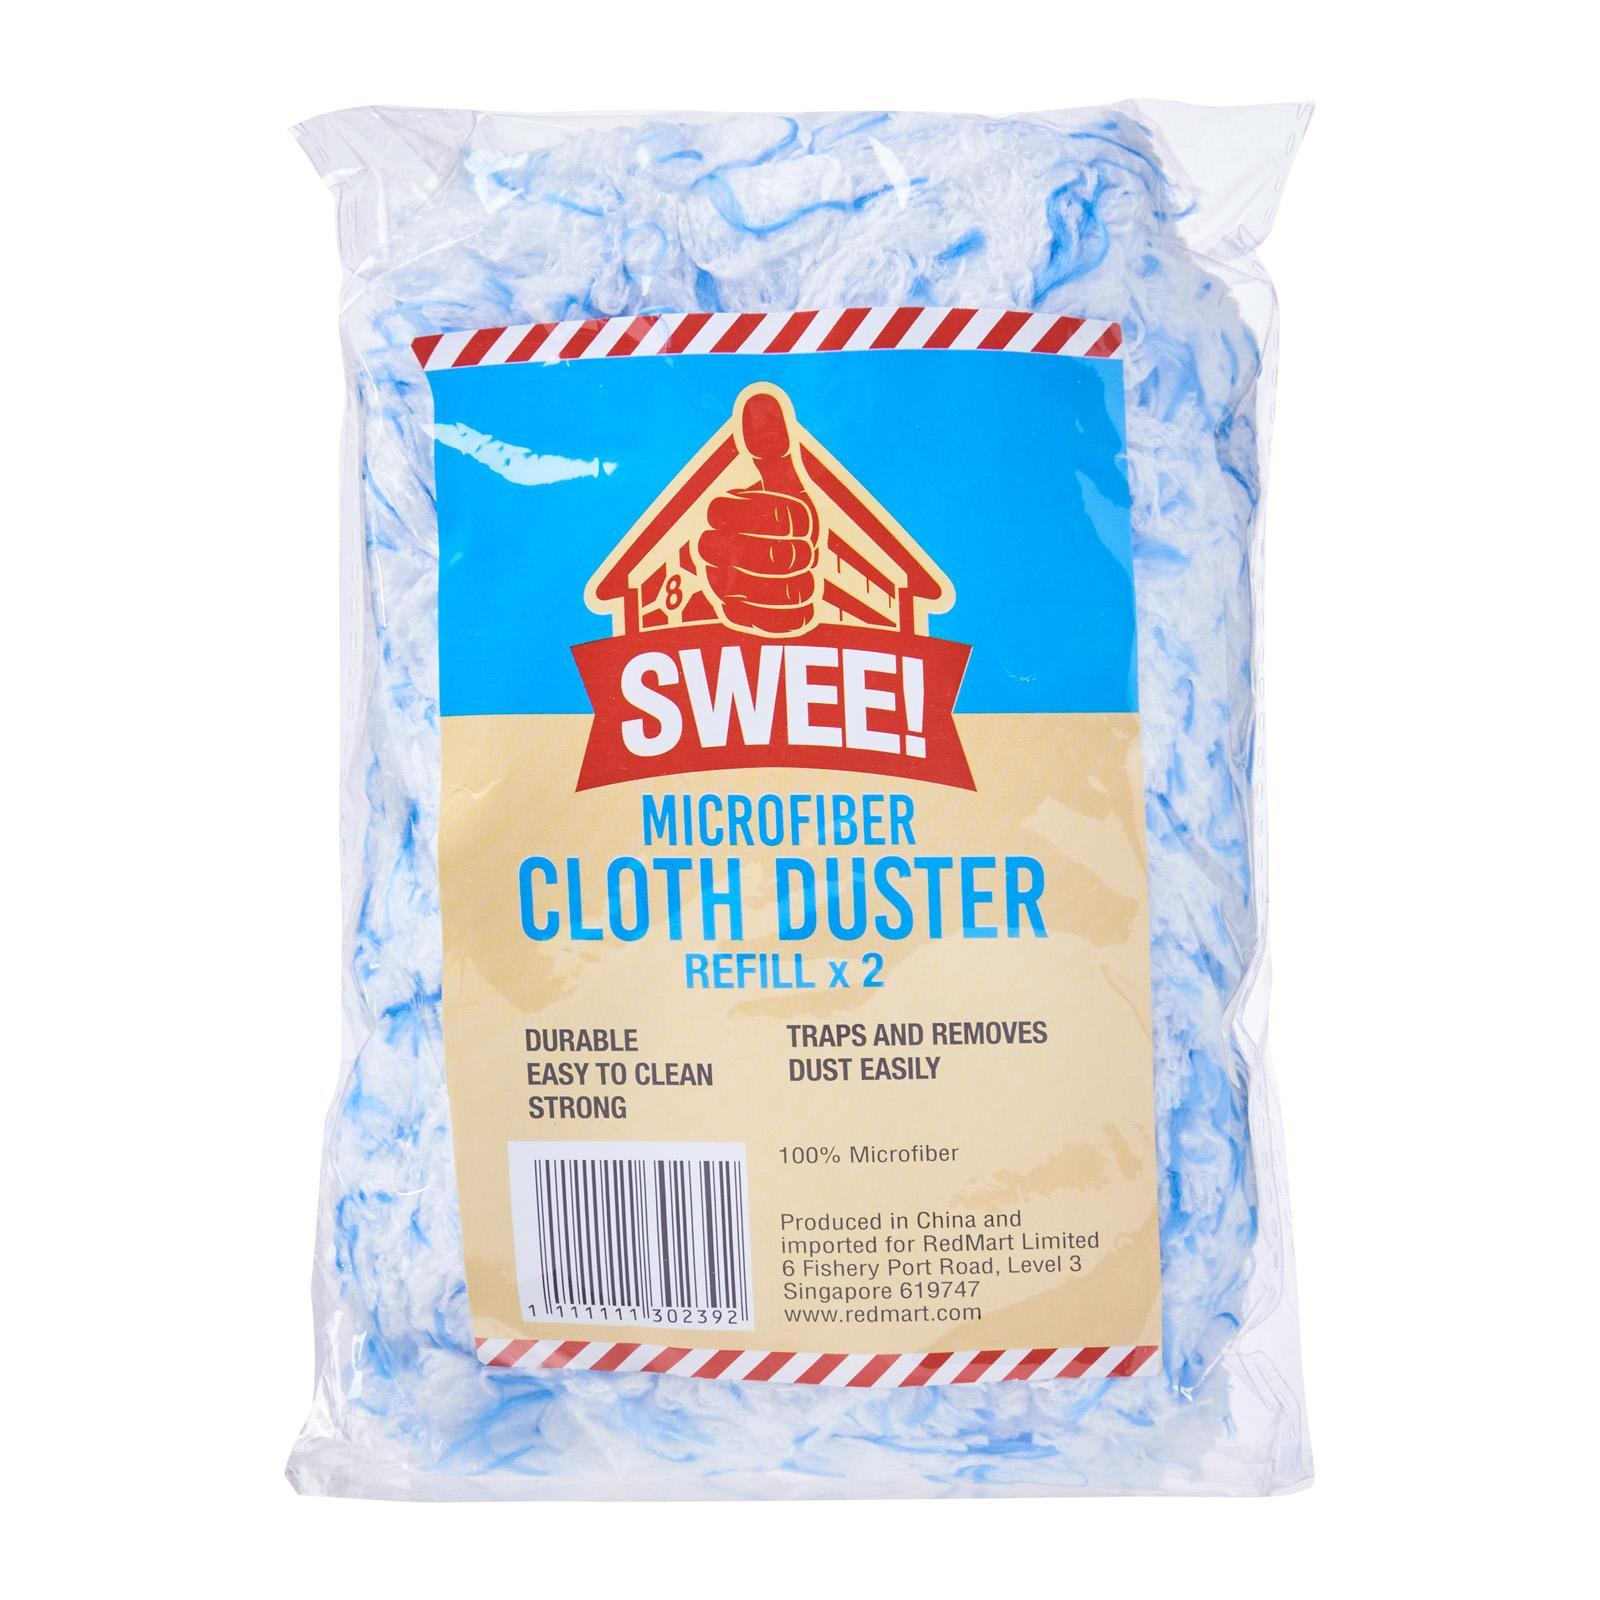 Swee! Microfiber Cloth Duster Refill